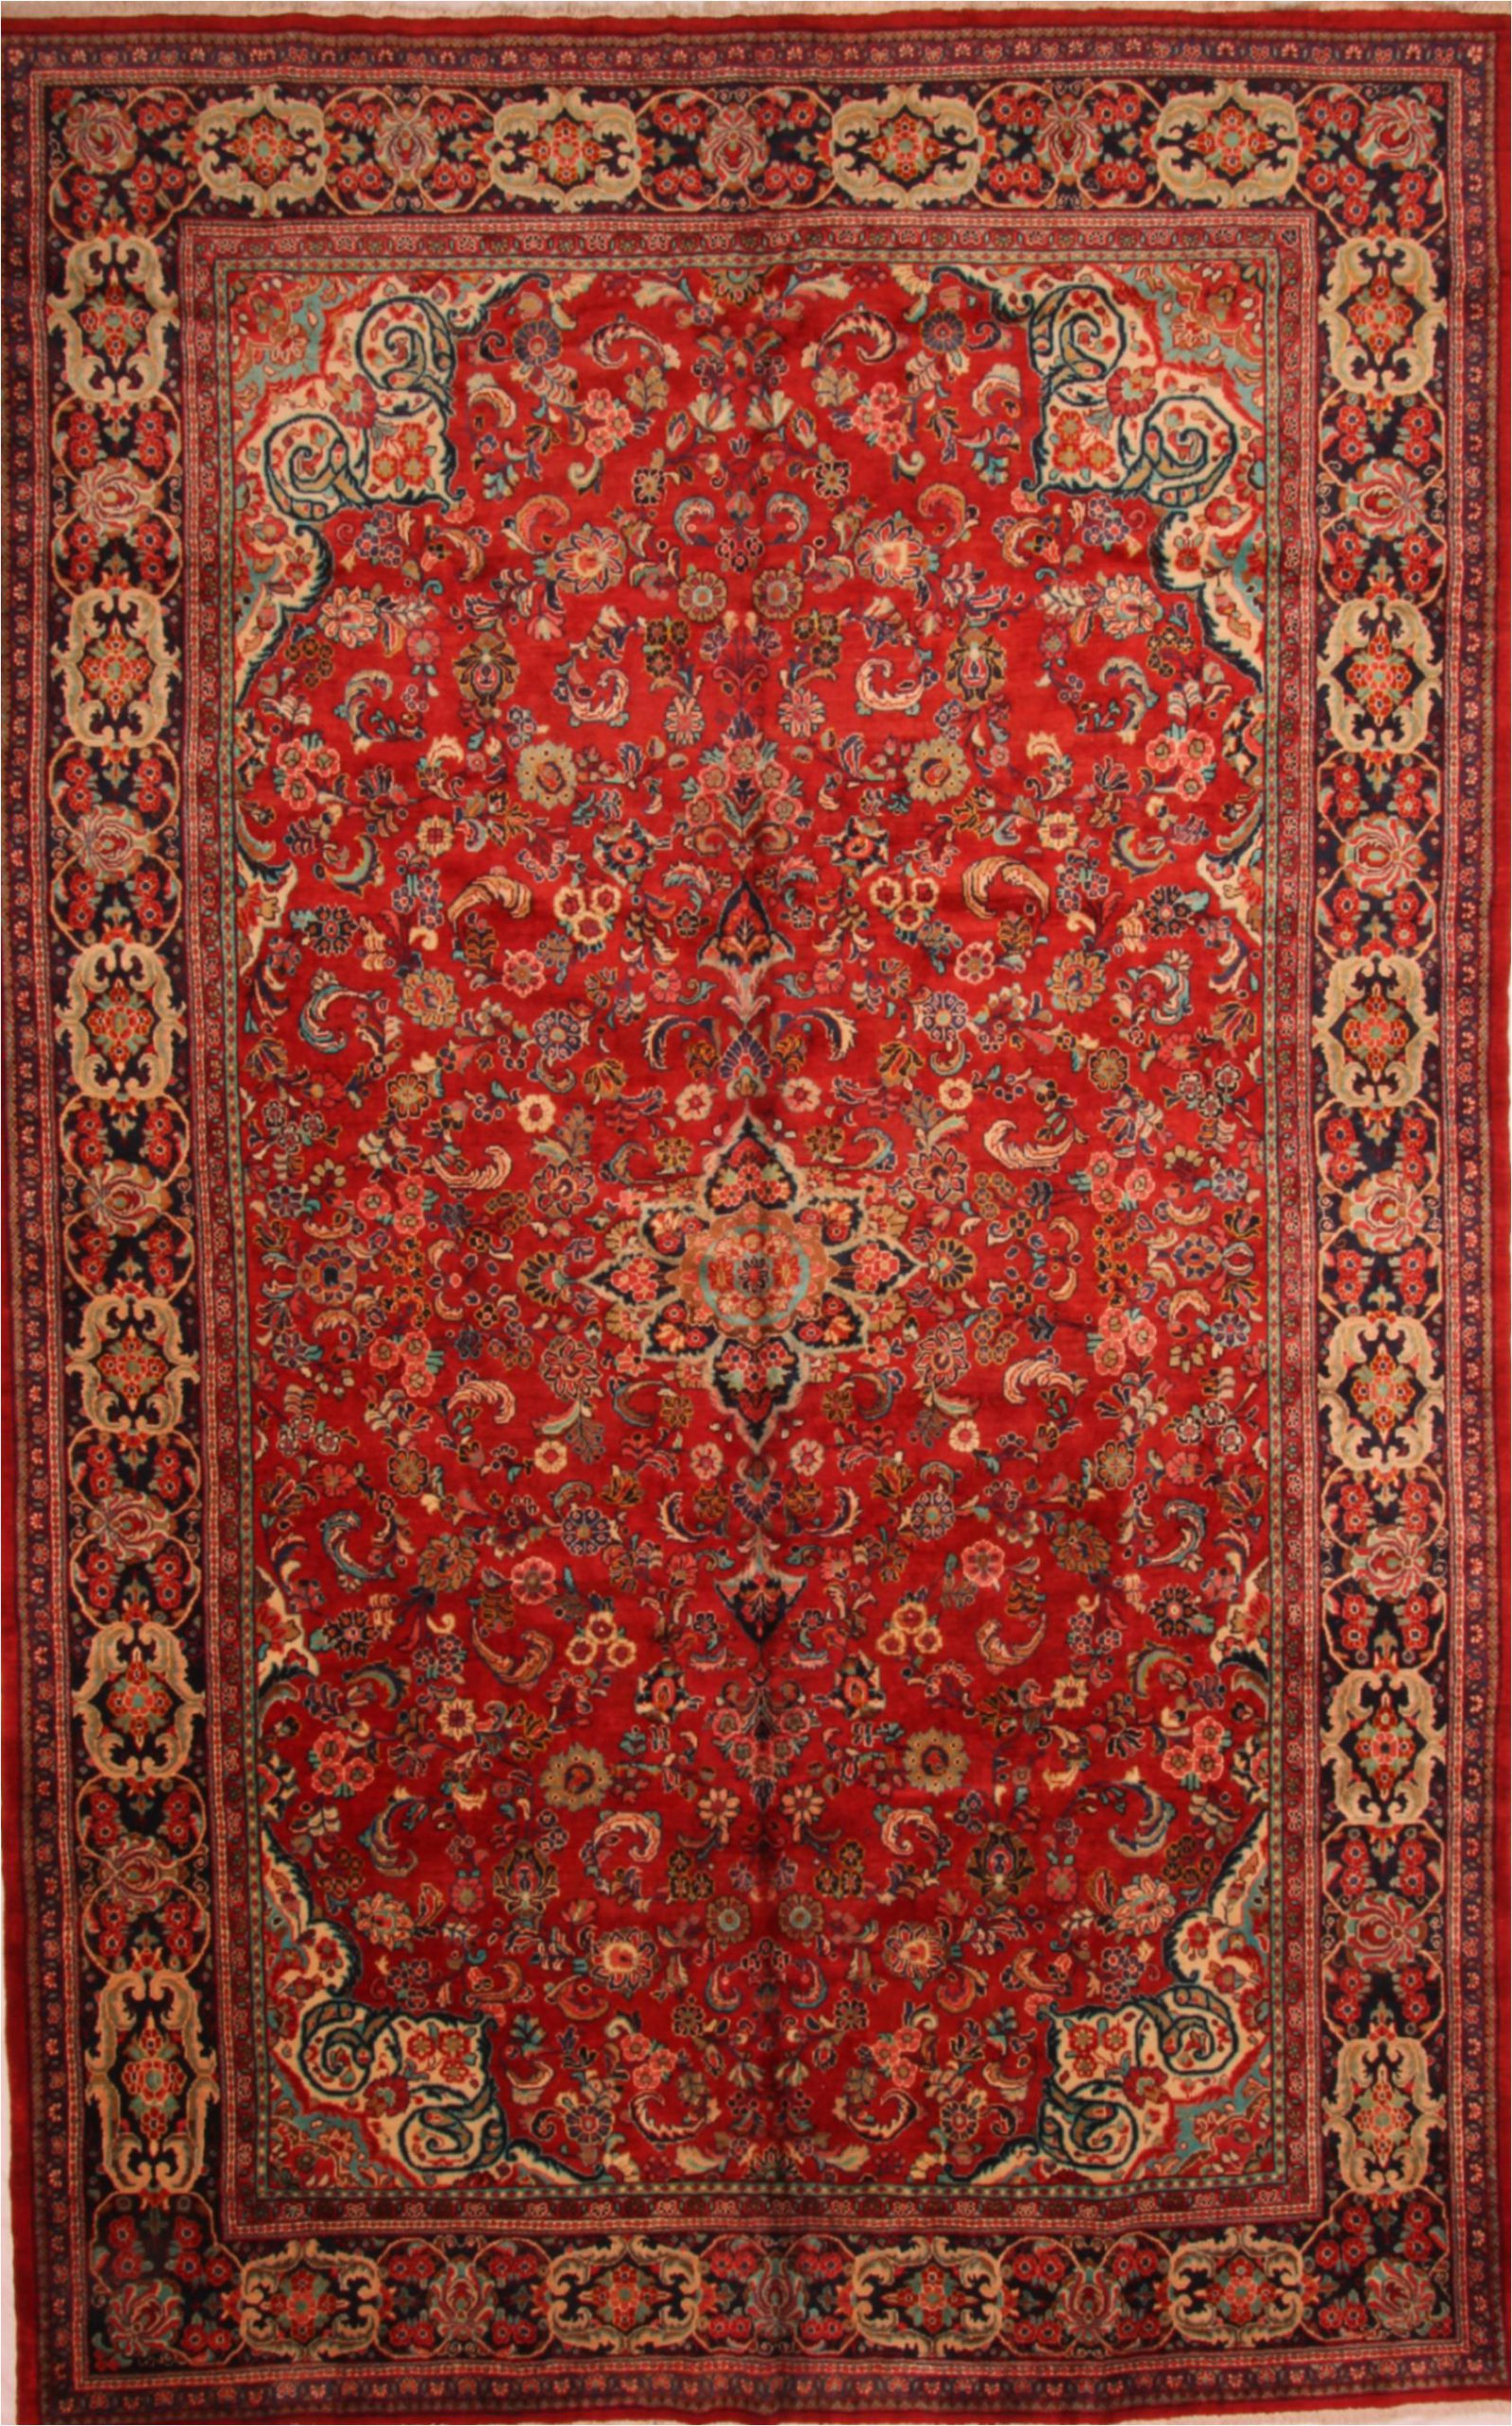 10x17 ft persian hand knotted raspberry red wool sku